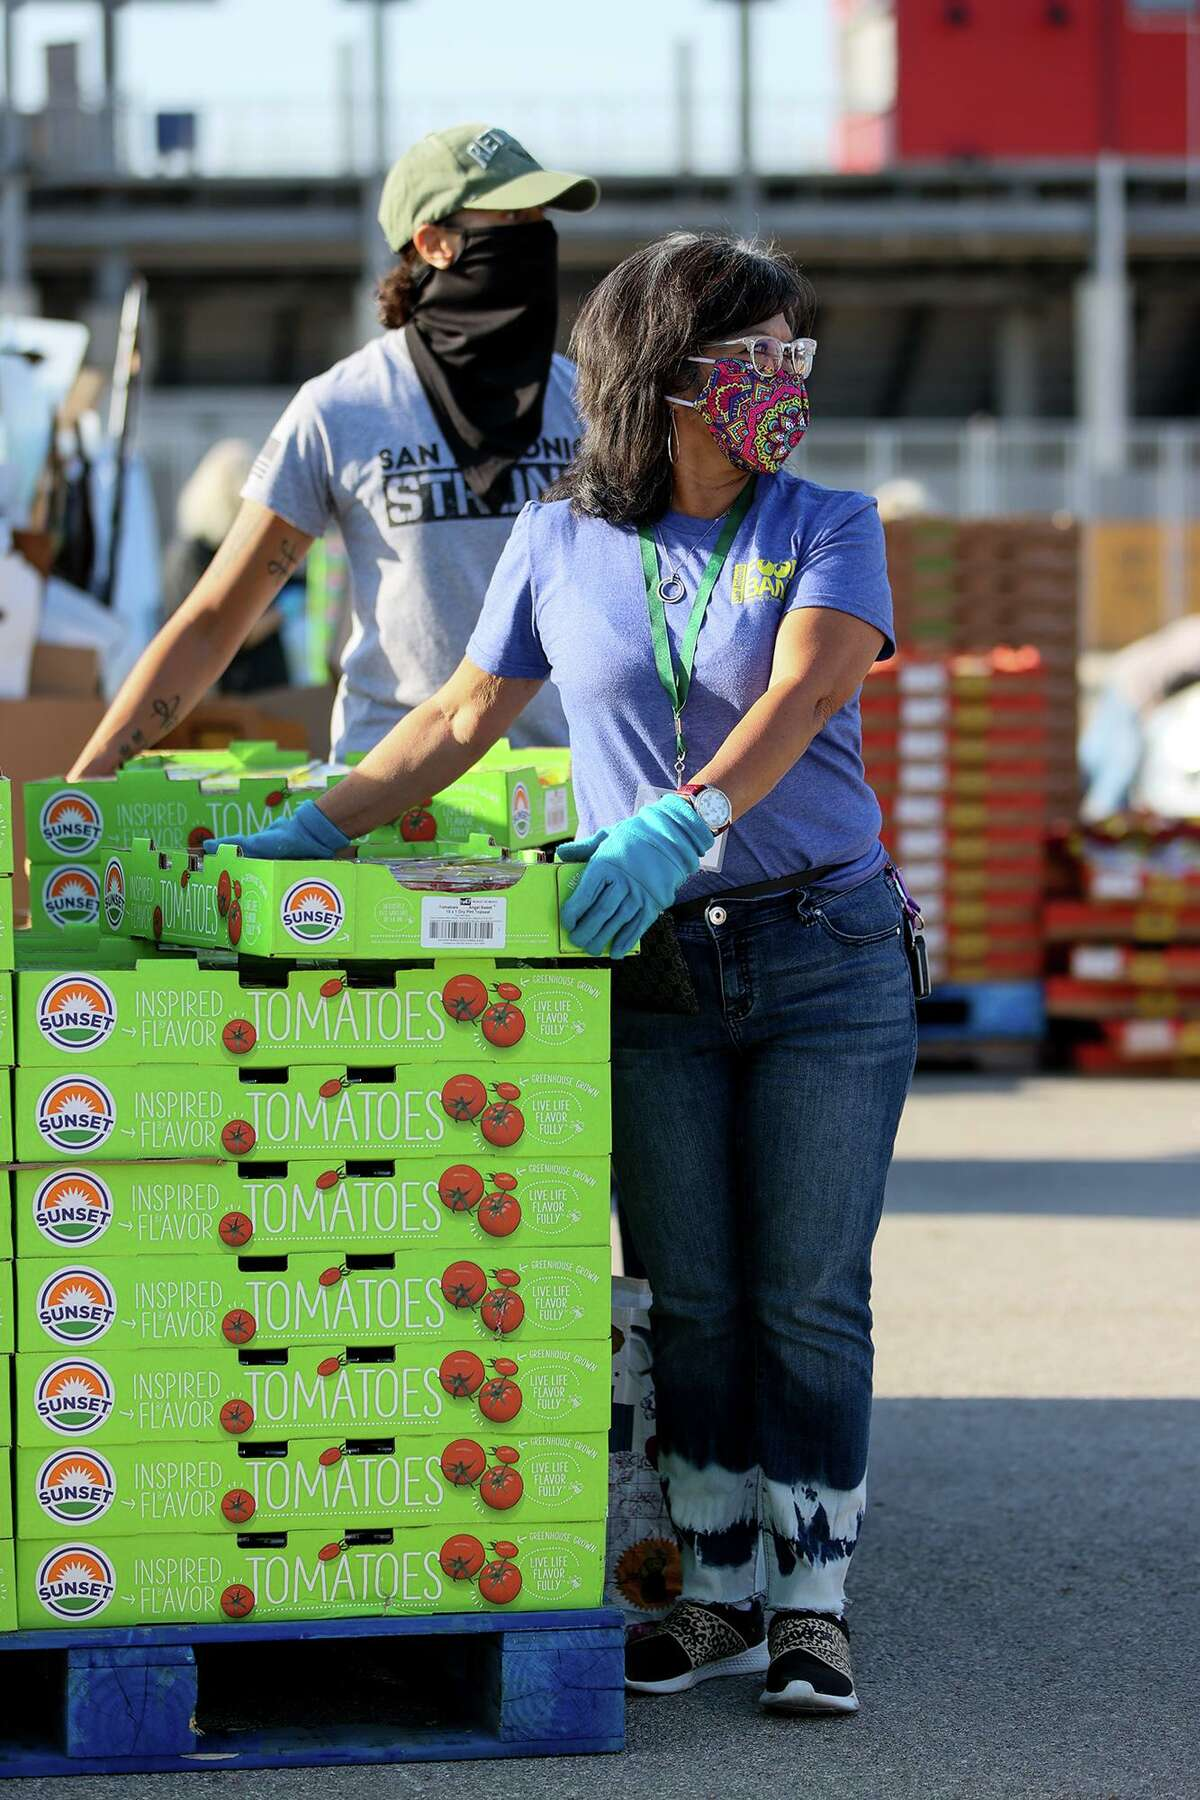 Yolanda Lopez, right, distributes flats of tomatoes with Andrea Deincentz at Toyota Field on Friday, March 26, 2021.